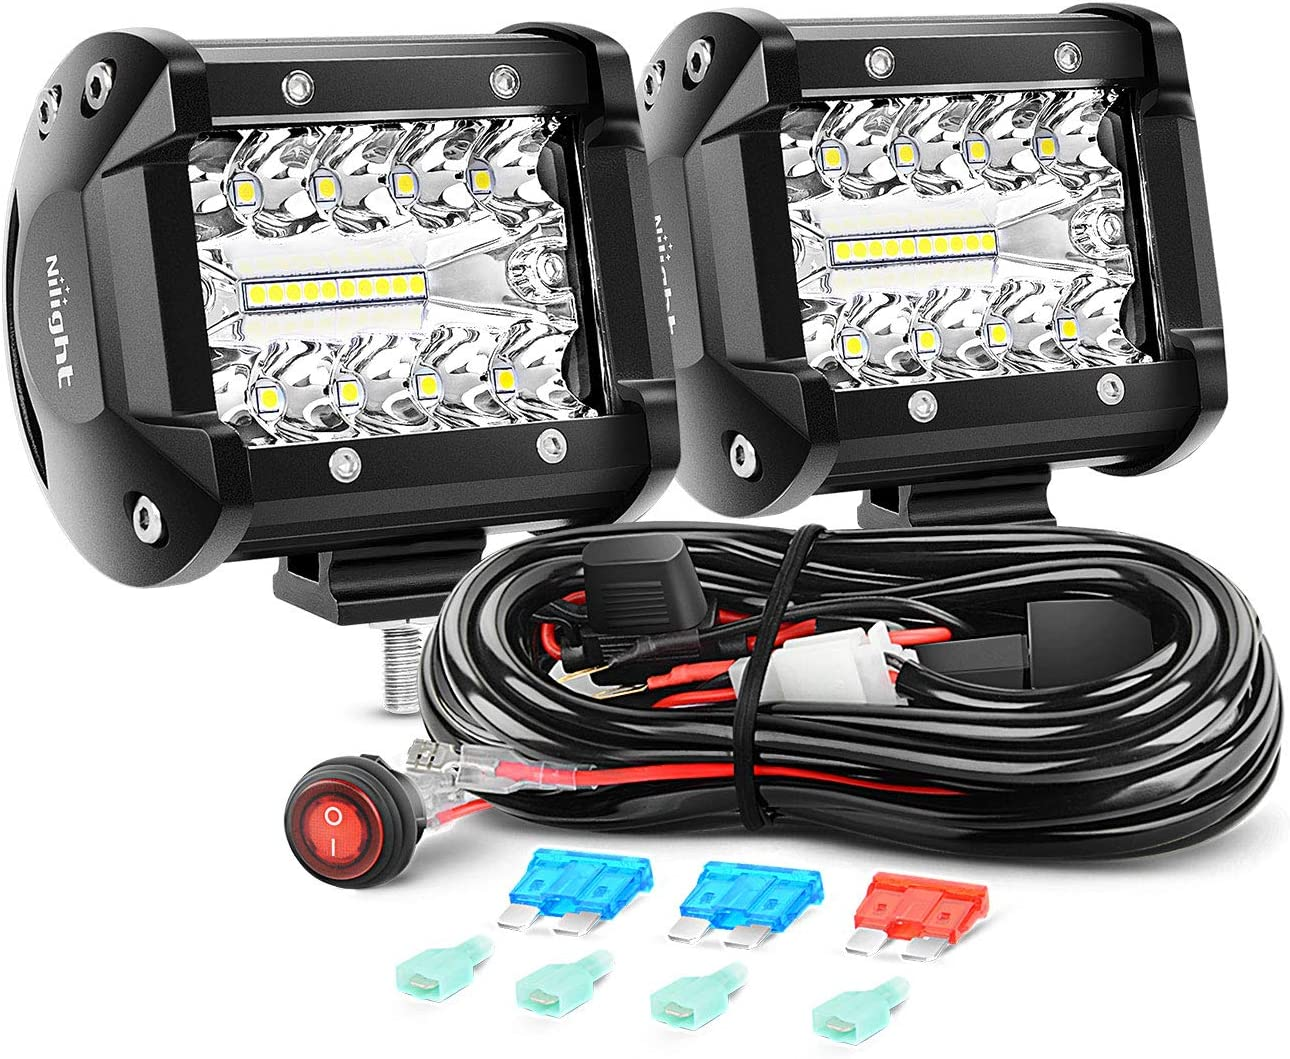 Nilight ZH302 18W Bar 2PCS 60W 4 Inch Flood Spot Combo LED Light Pods Triple Row Work Driving Lamp with 12 ft Wiring Harness kit-2 Leads,2 Year Warranty